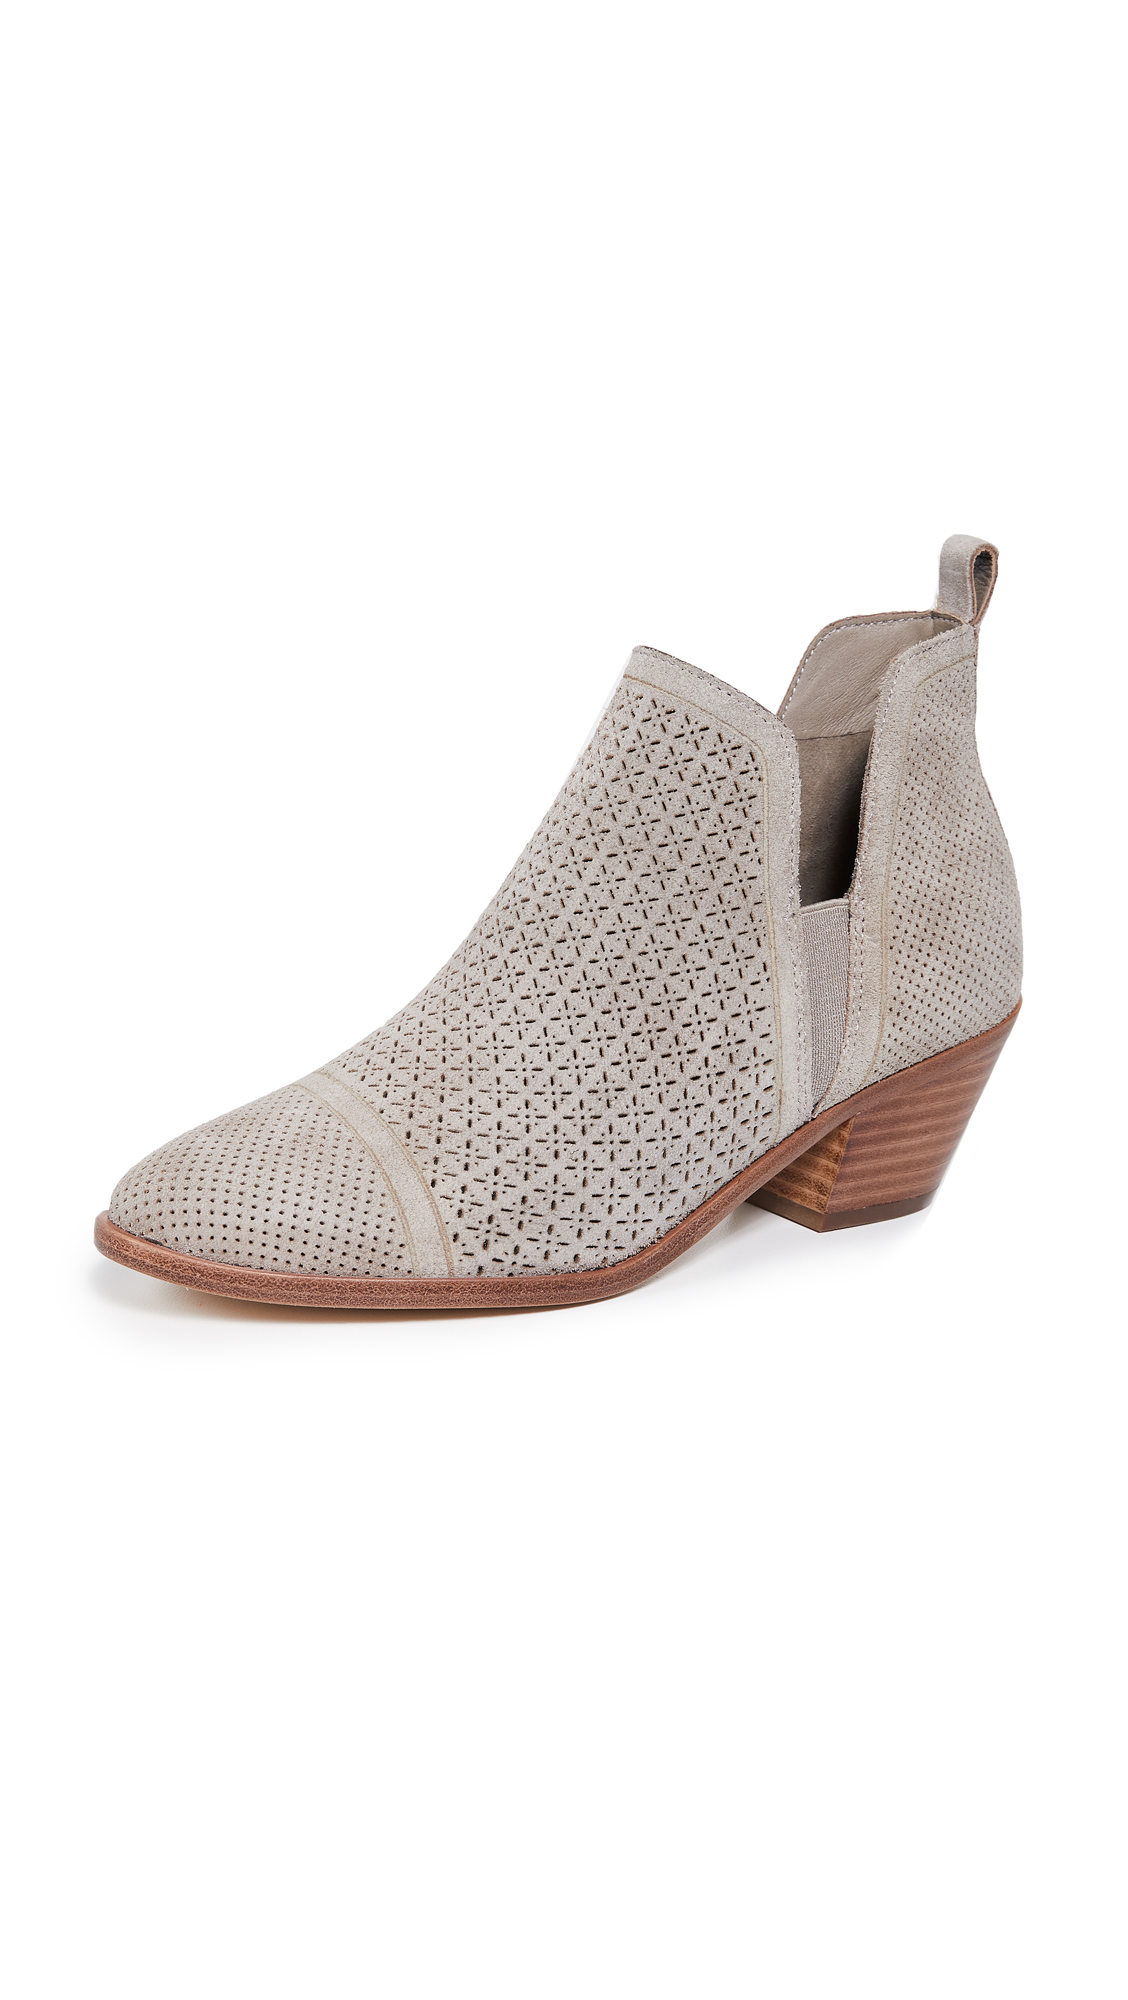 Sigerson Morrison Belle Suede Booties - Aredesia